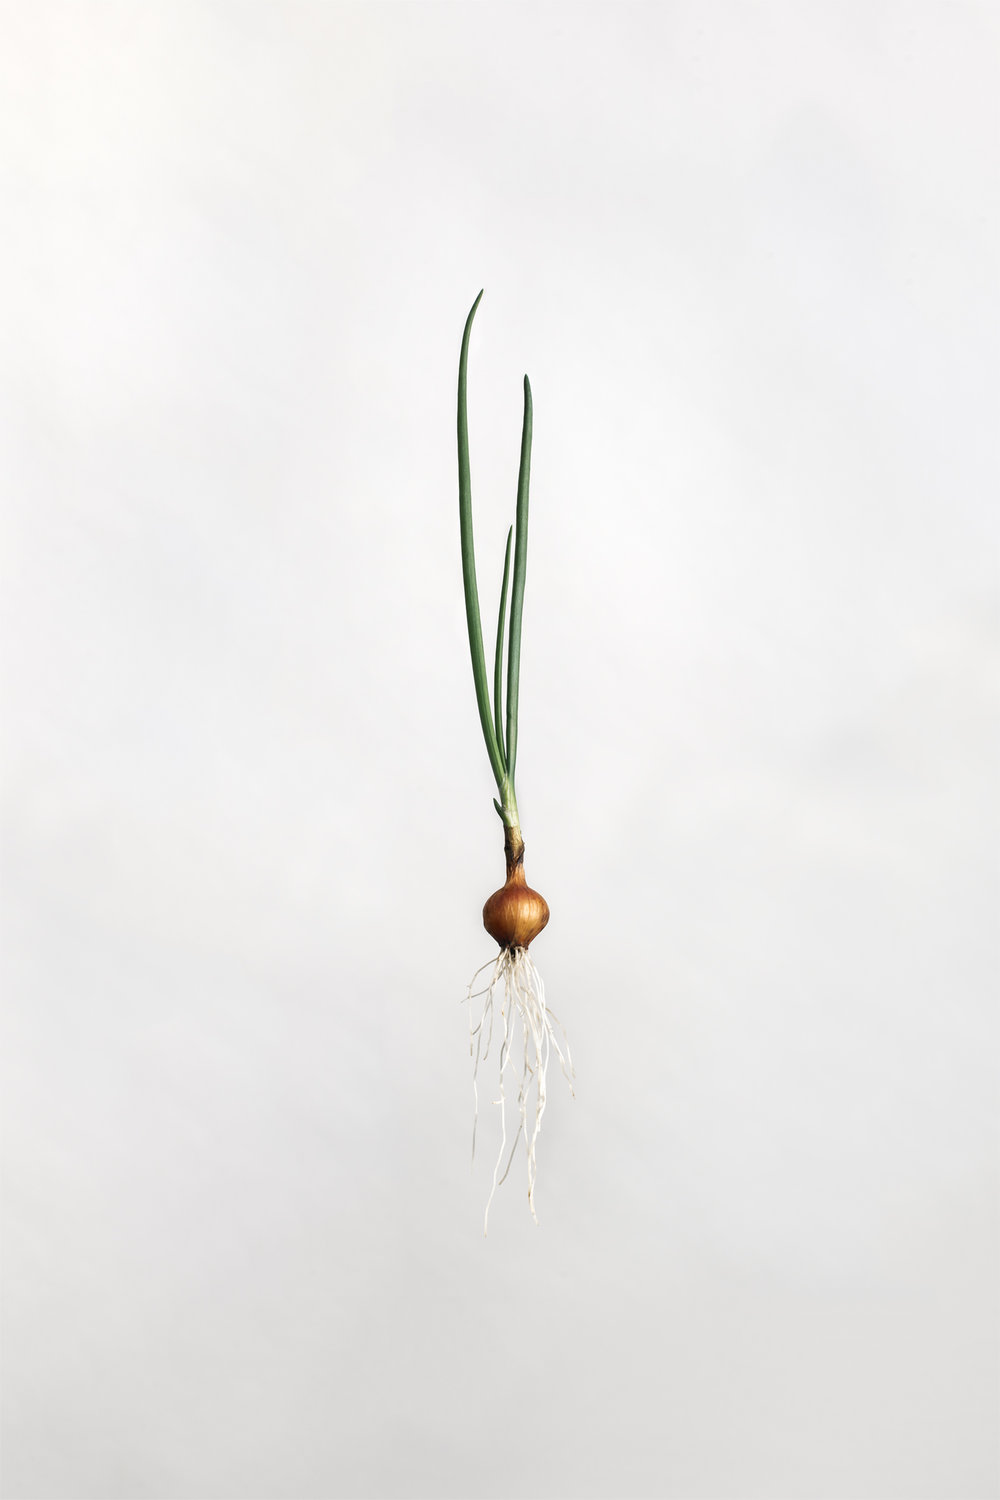 Allium cepa - Yellow Onion